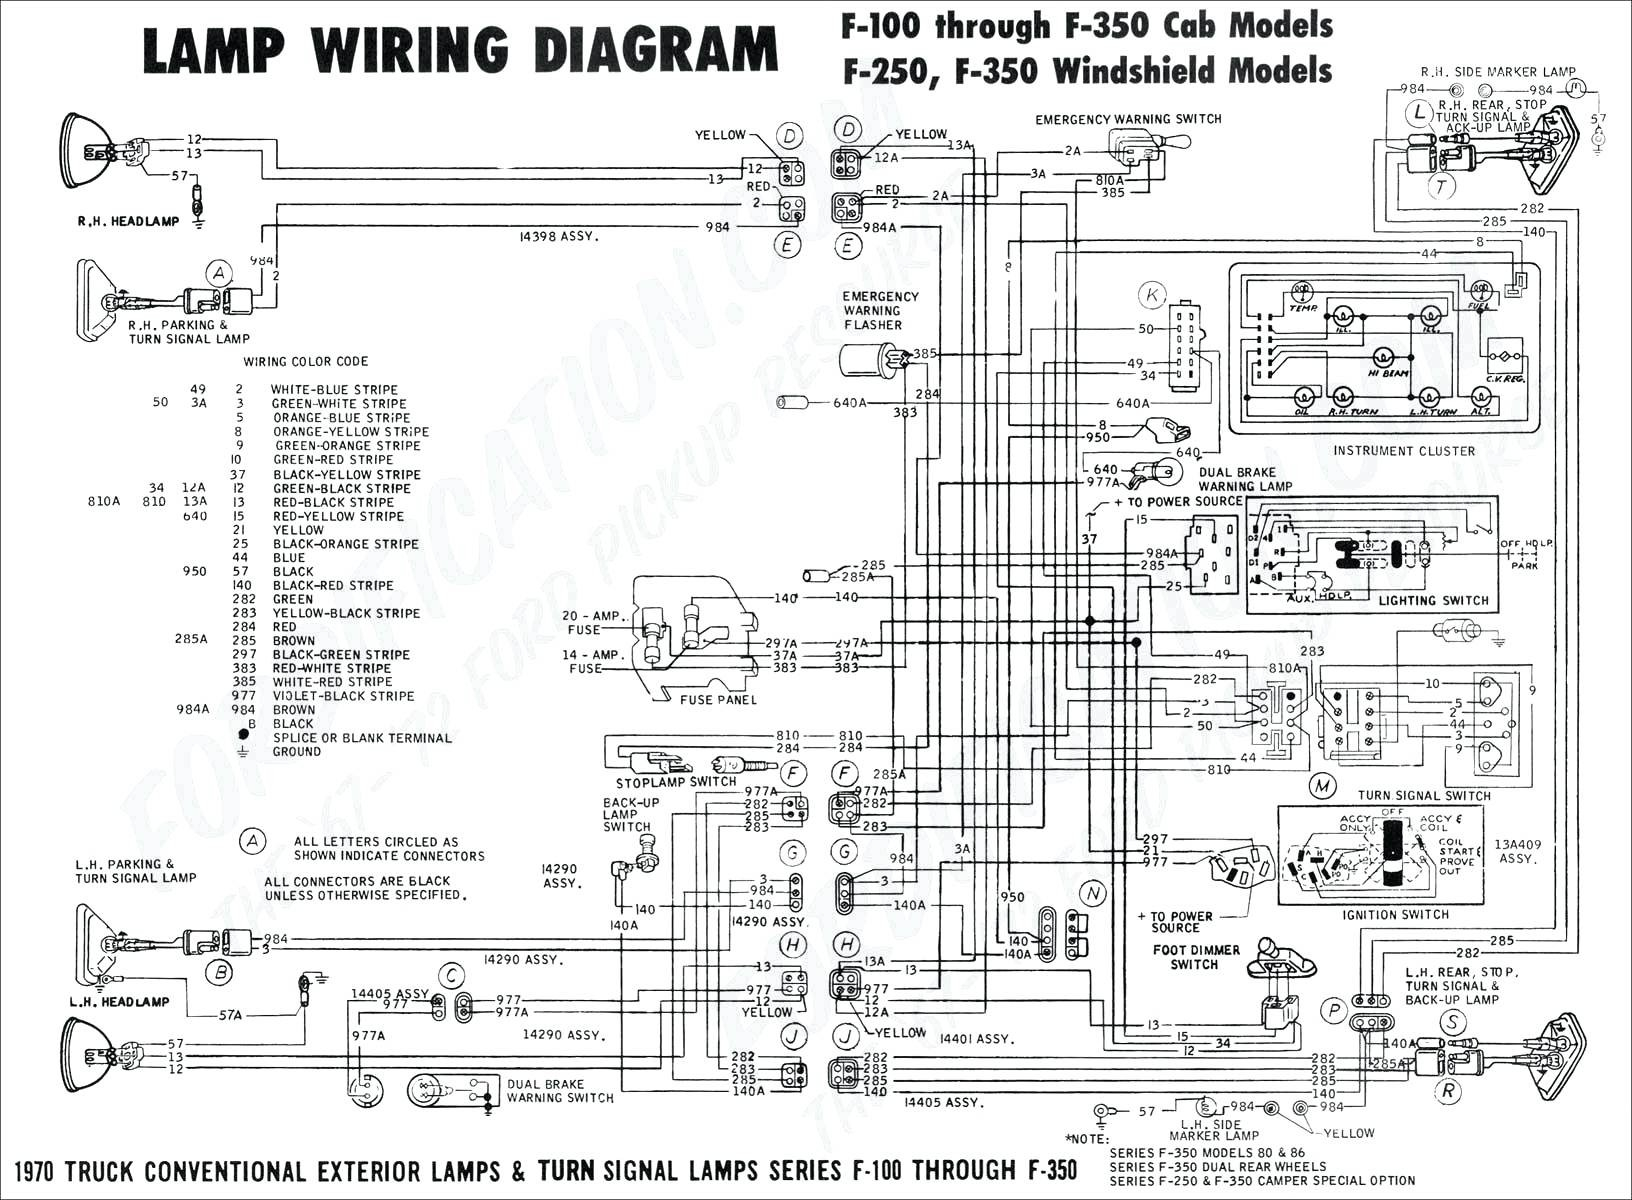 2004 f150 wiring schematic | free wiring diagram 1997 ford f 150 radio wiring diagram 1997 ford f 150 trailer wiring diagram #9